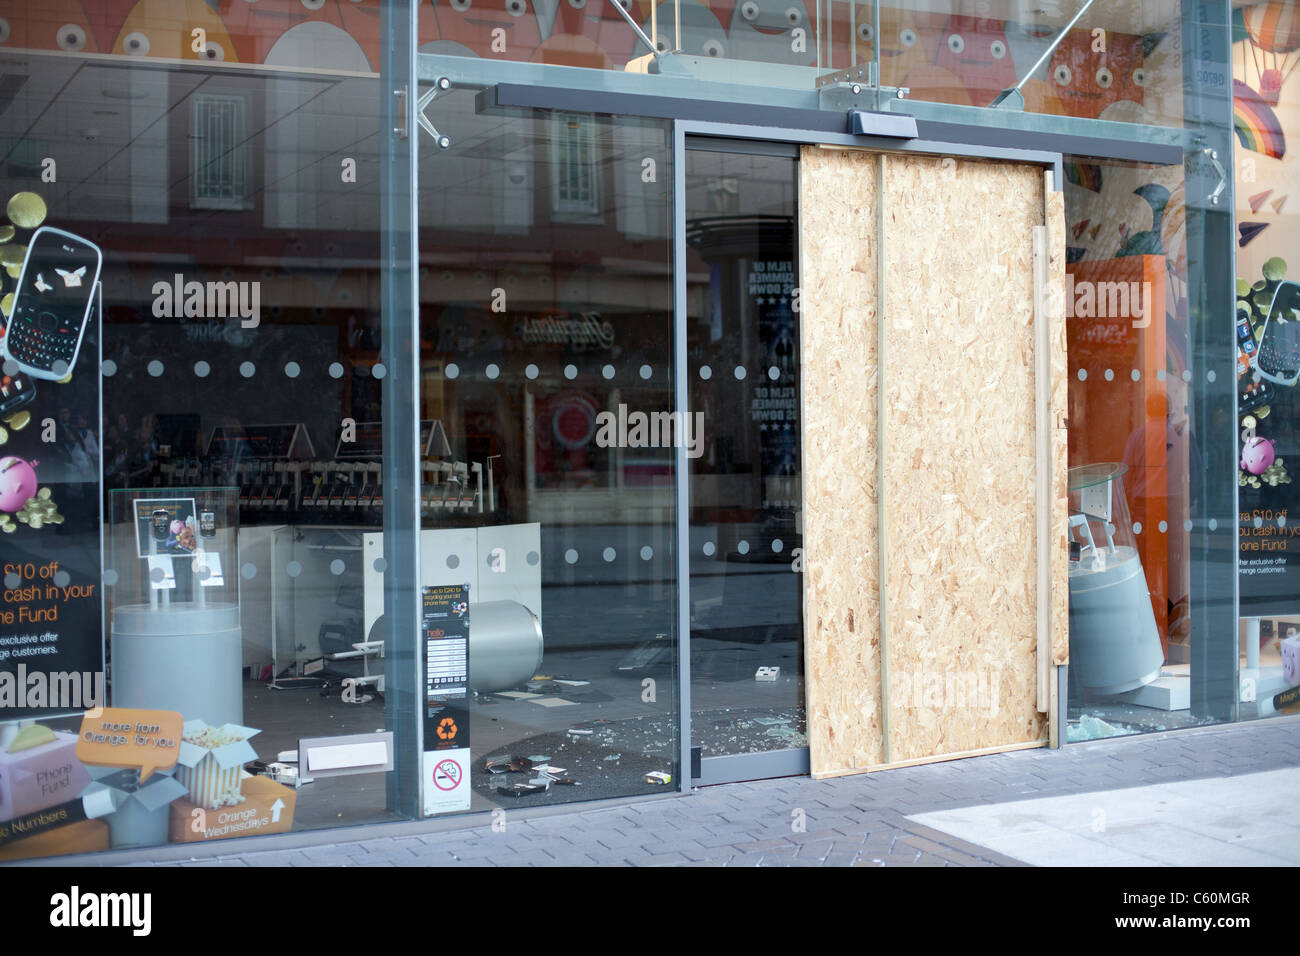 Birmingham City Centre, Morning after the riots August 9th 2011.  Images show boarded up shops and damage to Cars - Stock Image